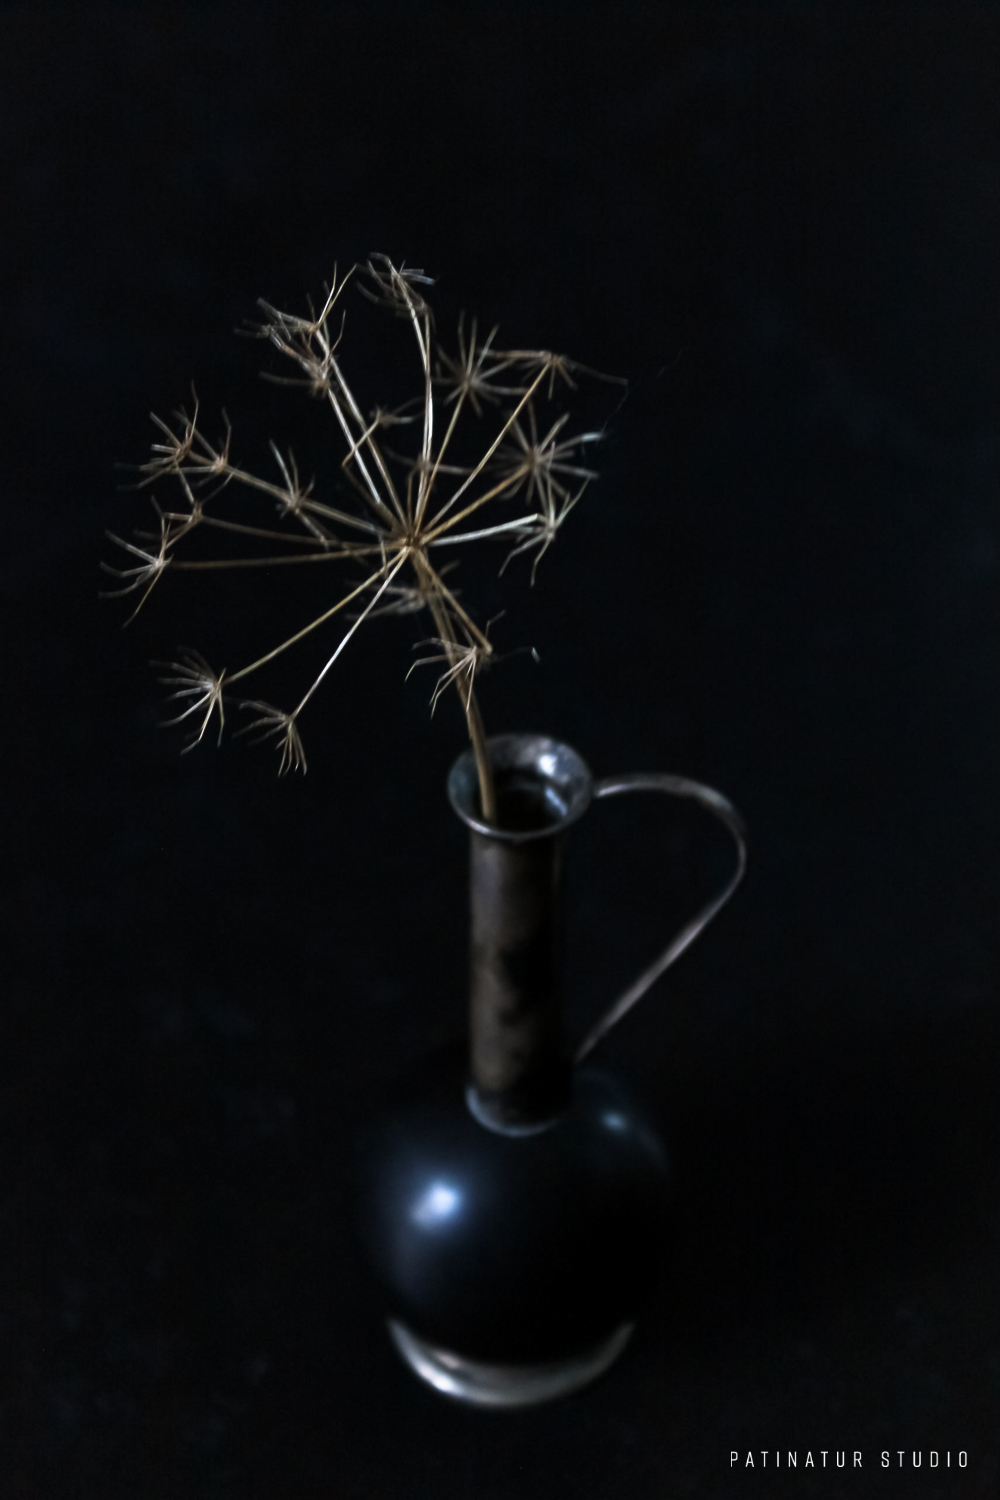 Dark and moody still life photo with umbellifer seedhead in small black vase